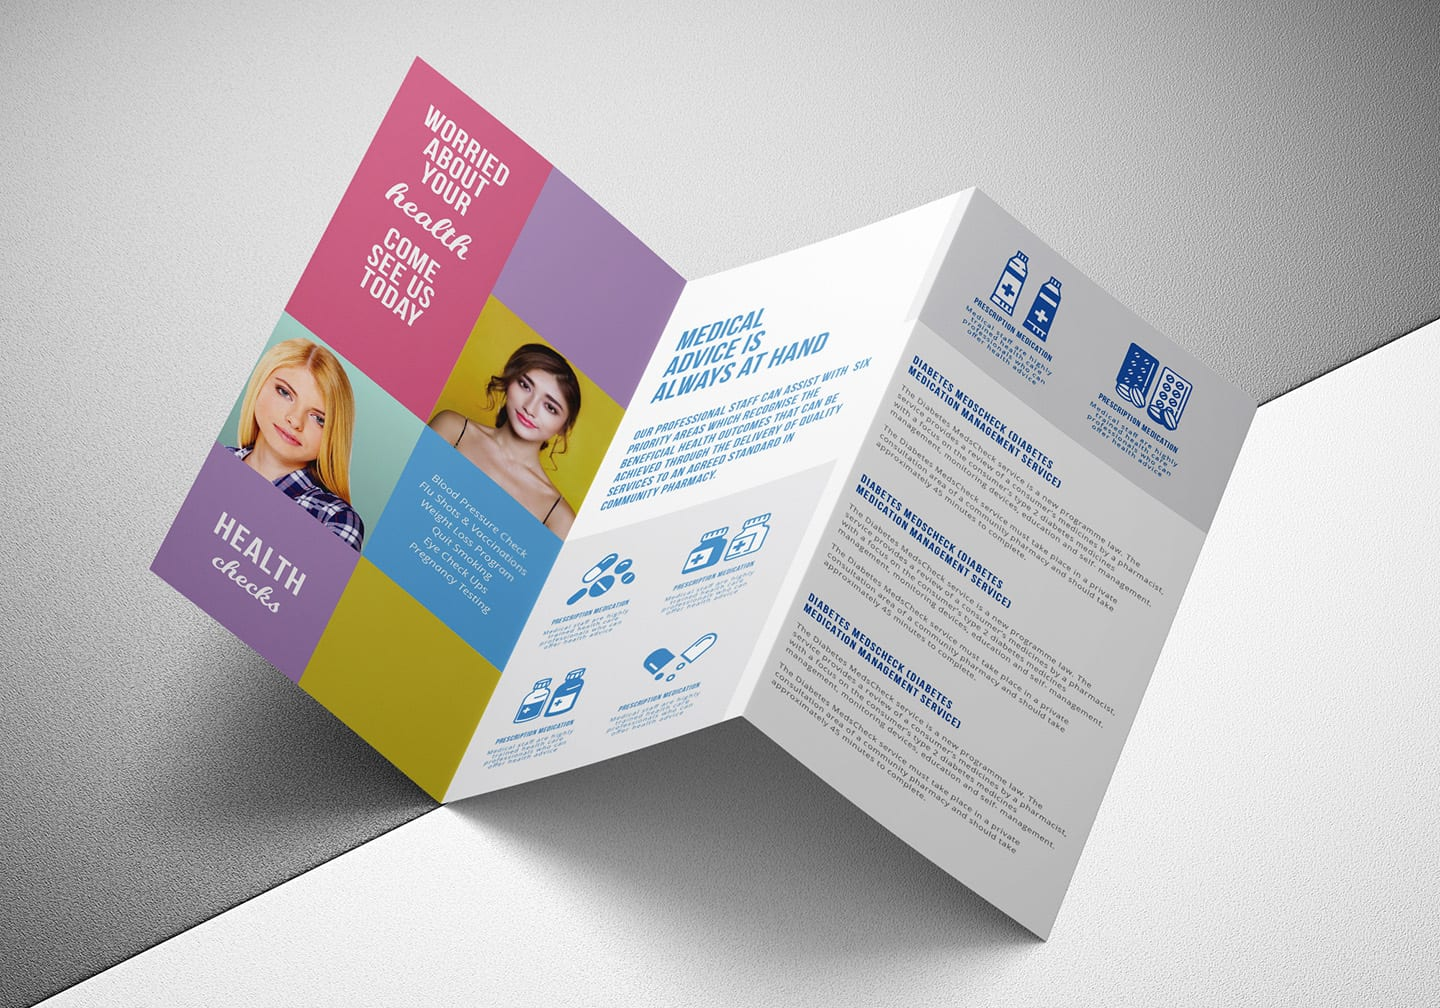 50 Premium and Top-notch Brochure Templates for 2019 - 50 ... |Medical Tri Fold Brochure Template